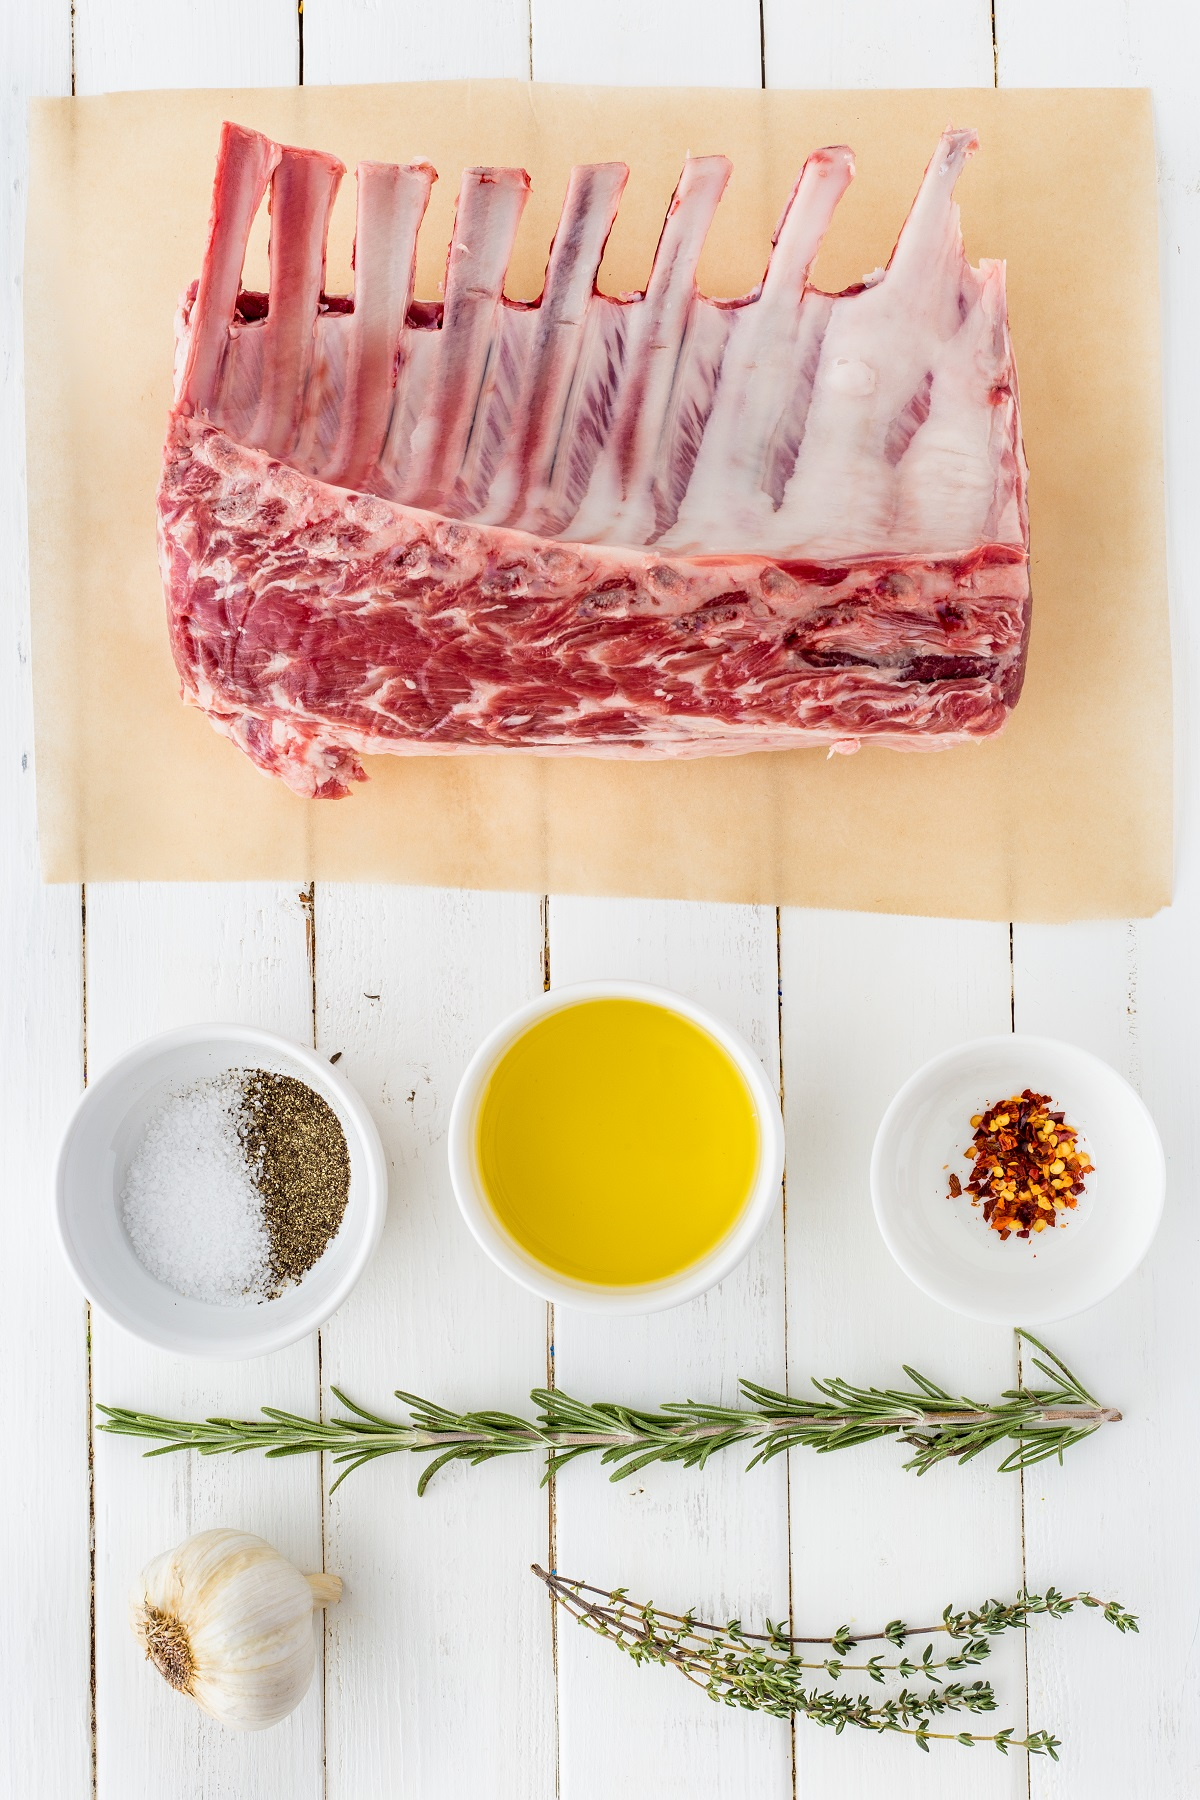 Ingredients for grilled lamb chops laid out on a white tabletop.